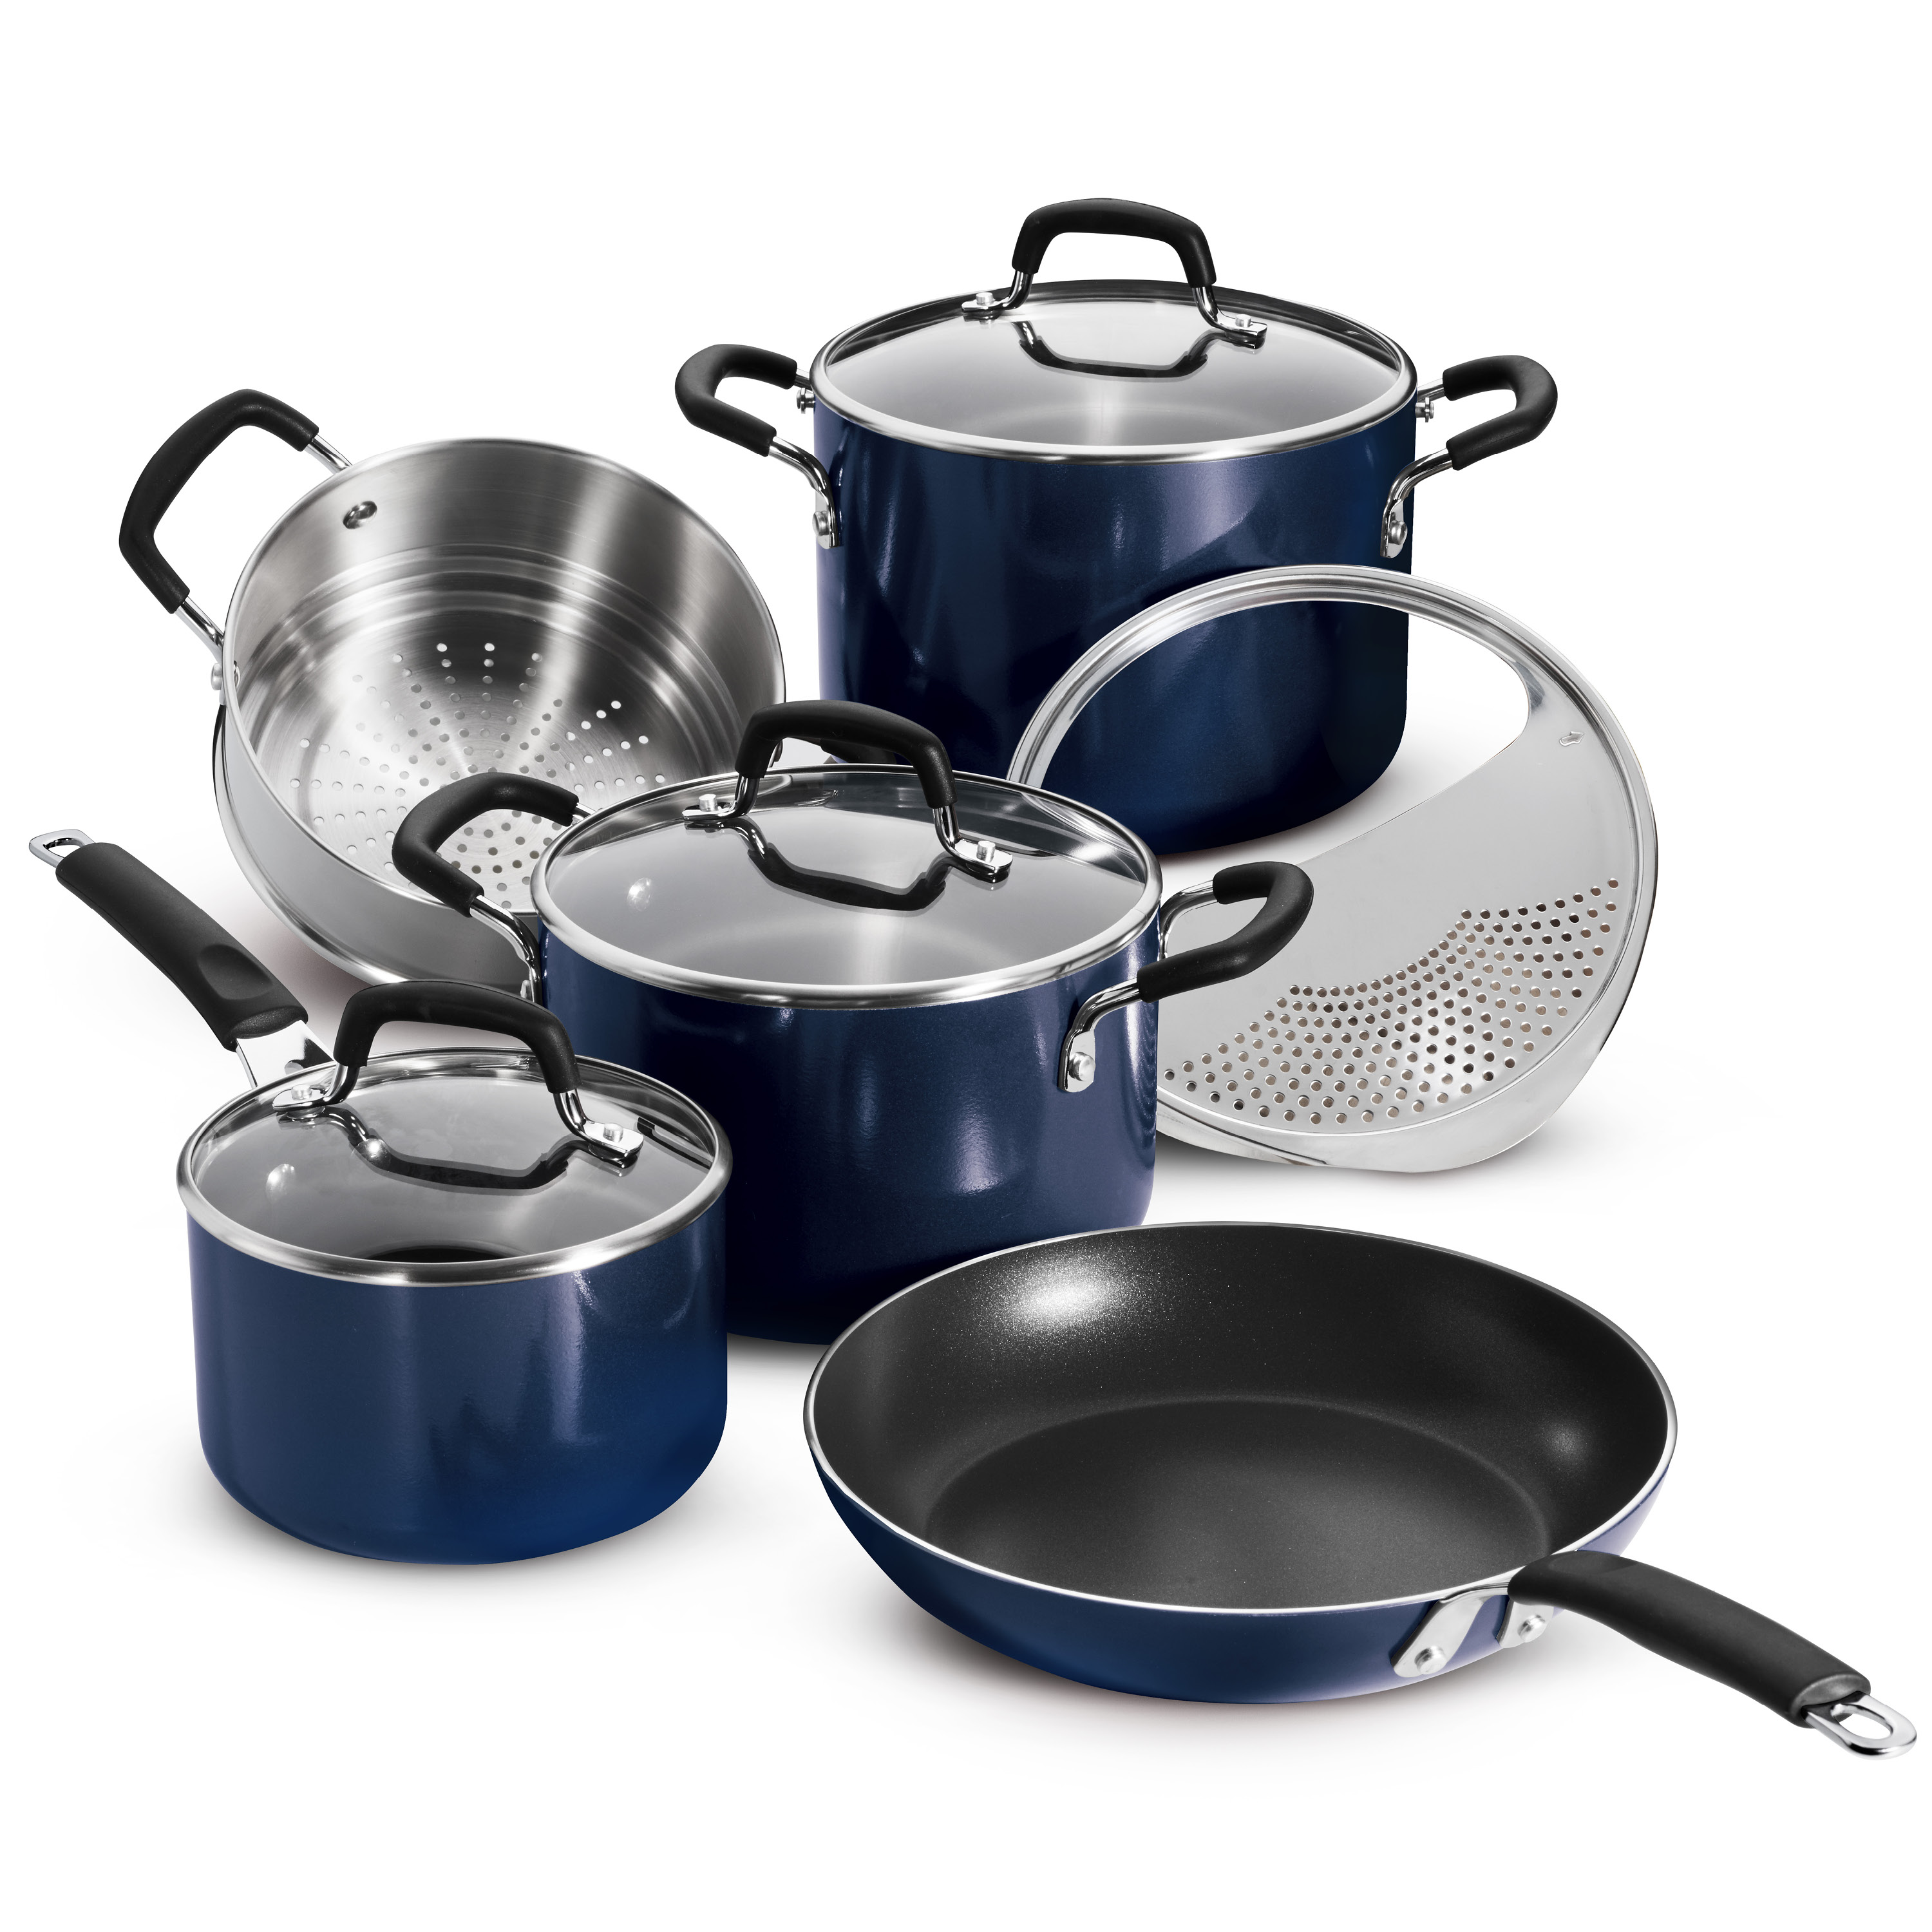 Tramontina 9 Pc Porcelain Enamel Nonstick Cookware Set - Cobalt Blue